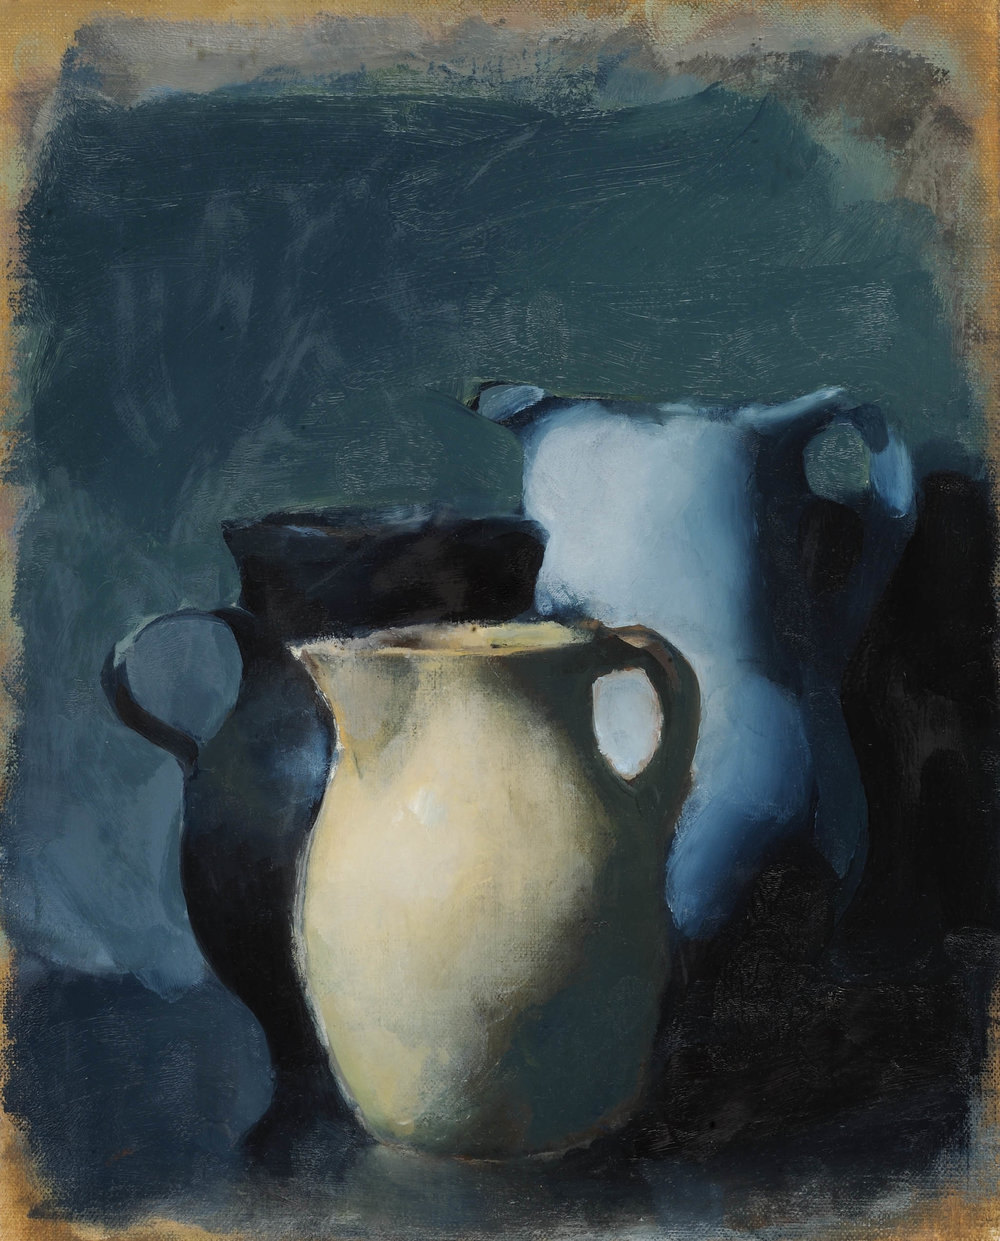 Pitchers  (743), private collection, 2017